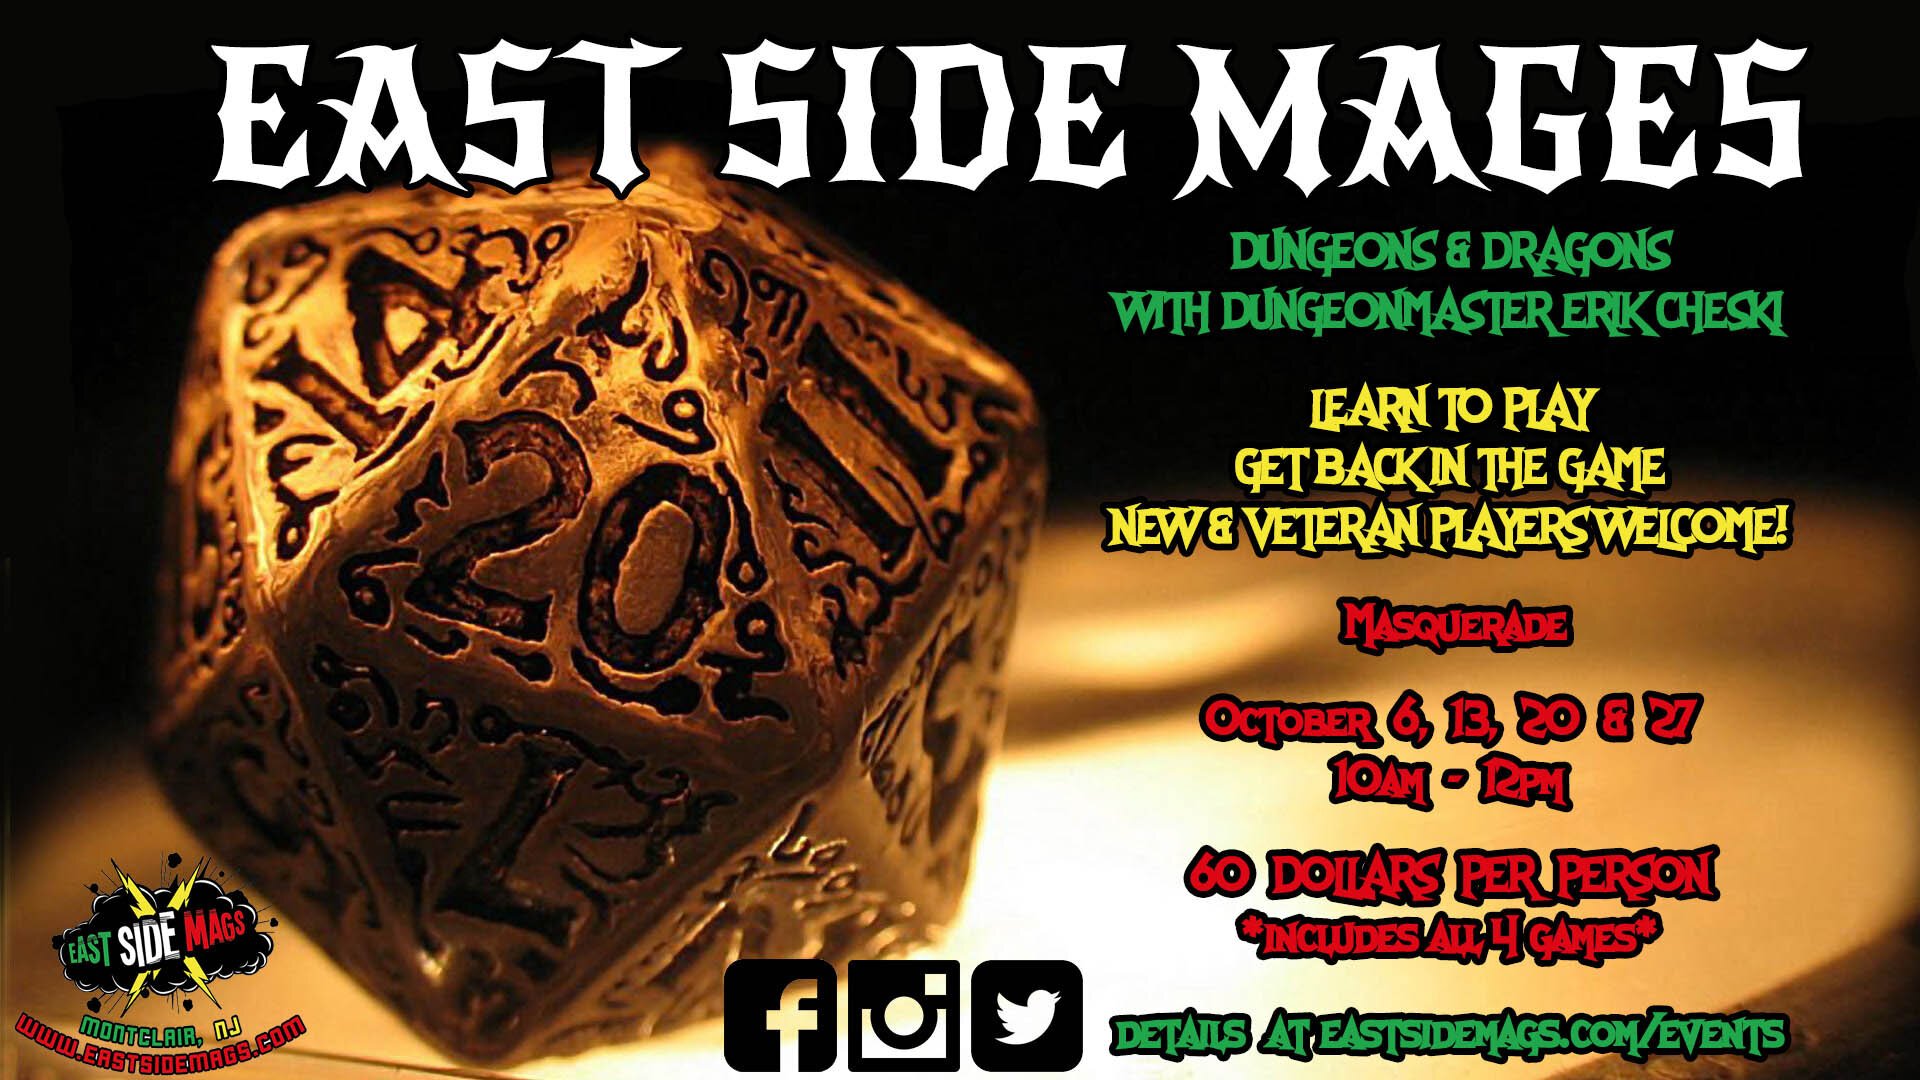 ESMages FB Cover Masquerade.jpg